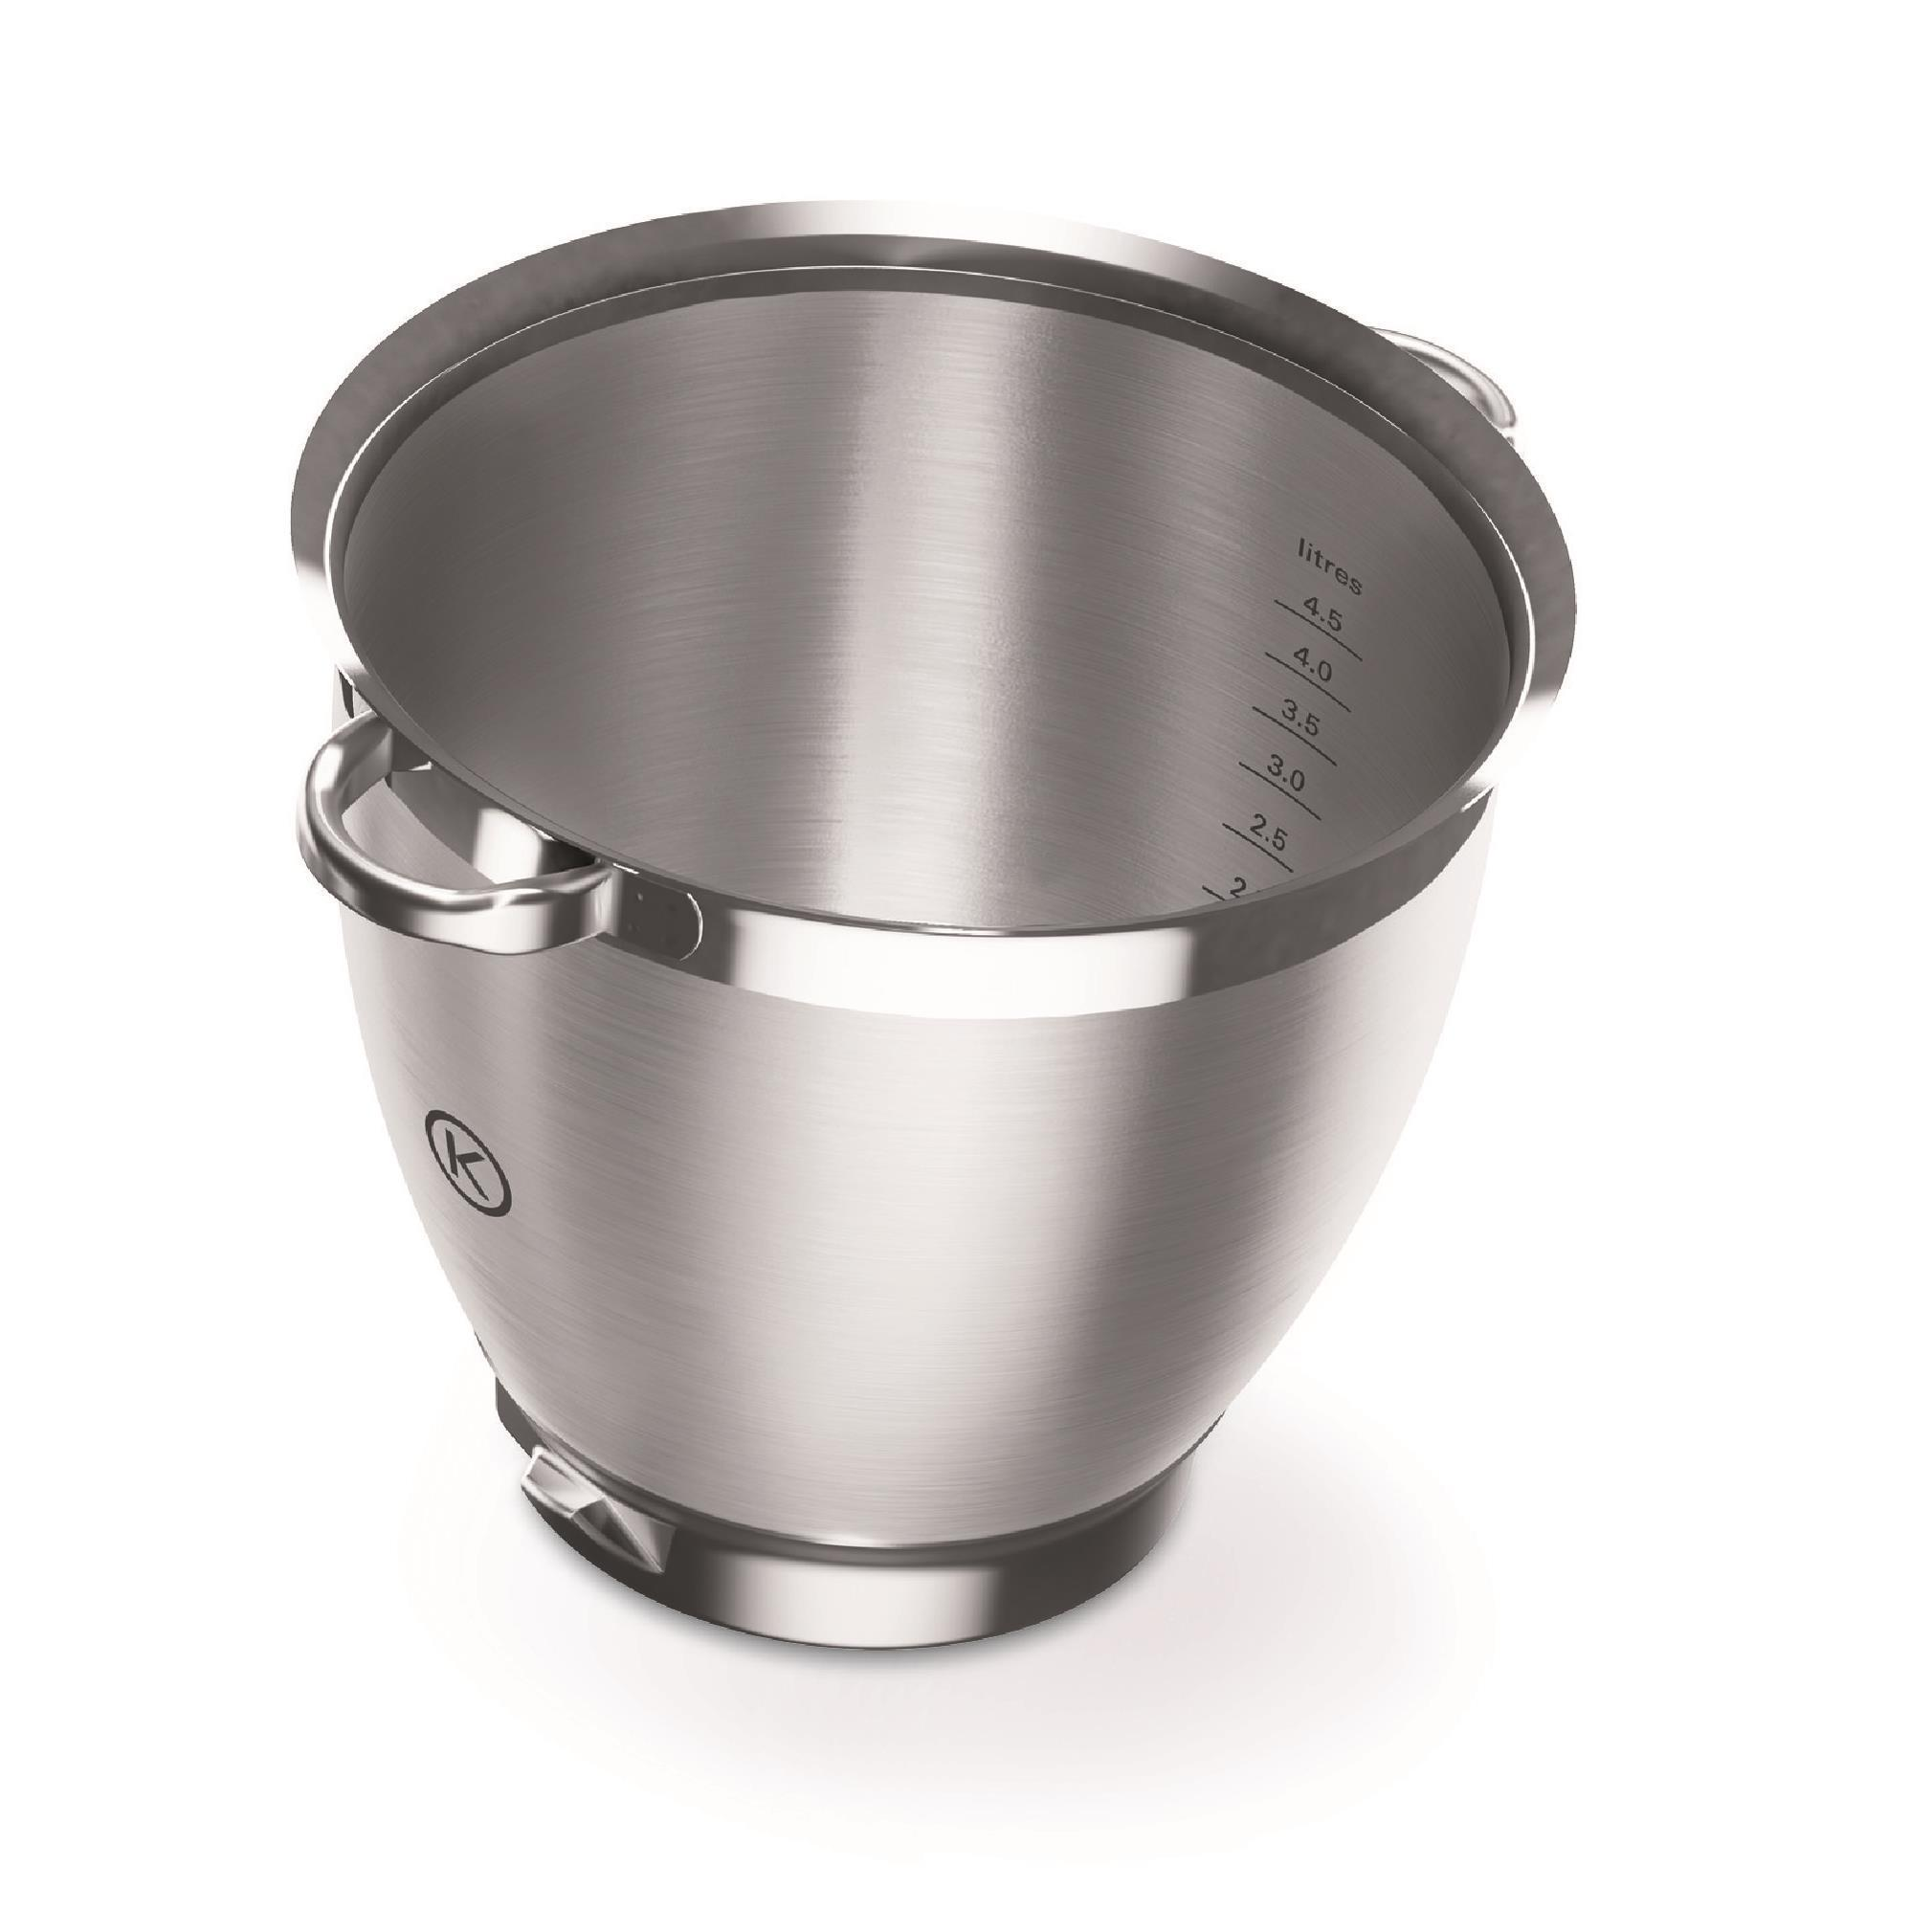 Kenwood KAT531SS Chef XL Sense Stainless Steel Bowl with Handles